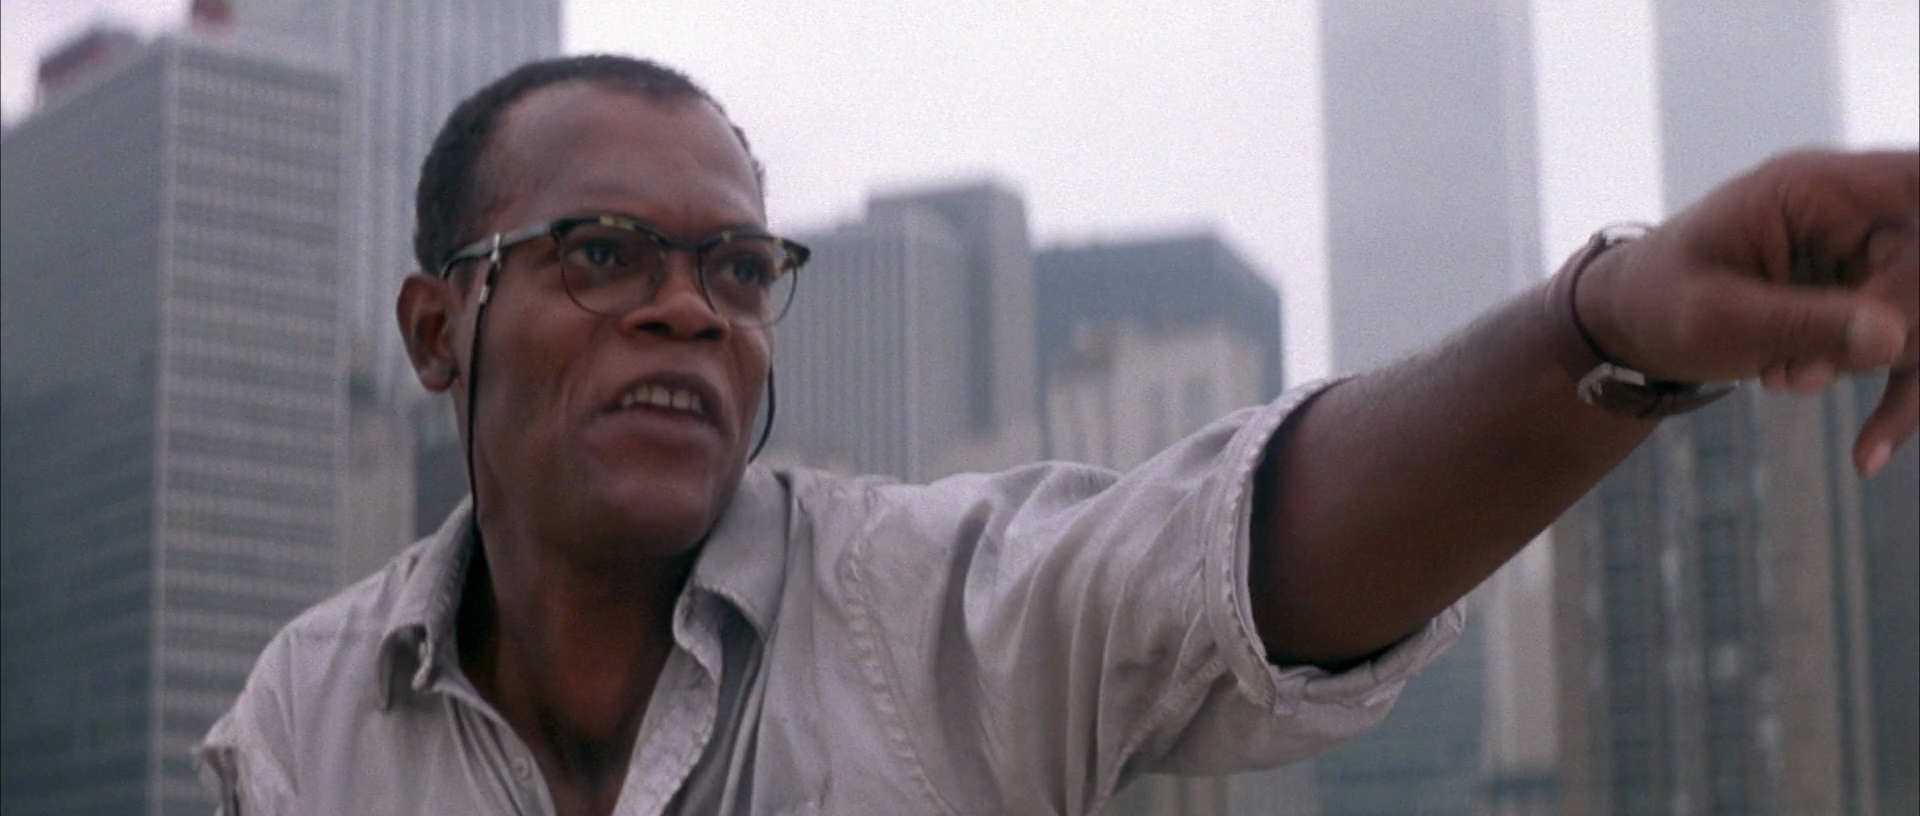 Samuel L. Jackson as 'Zeus' in Die Hard With A Vengeance (1995)